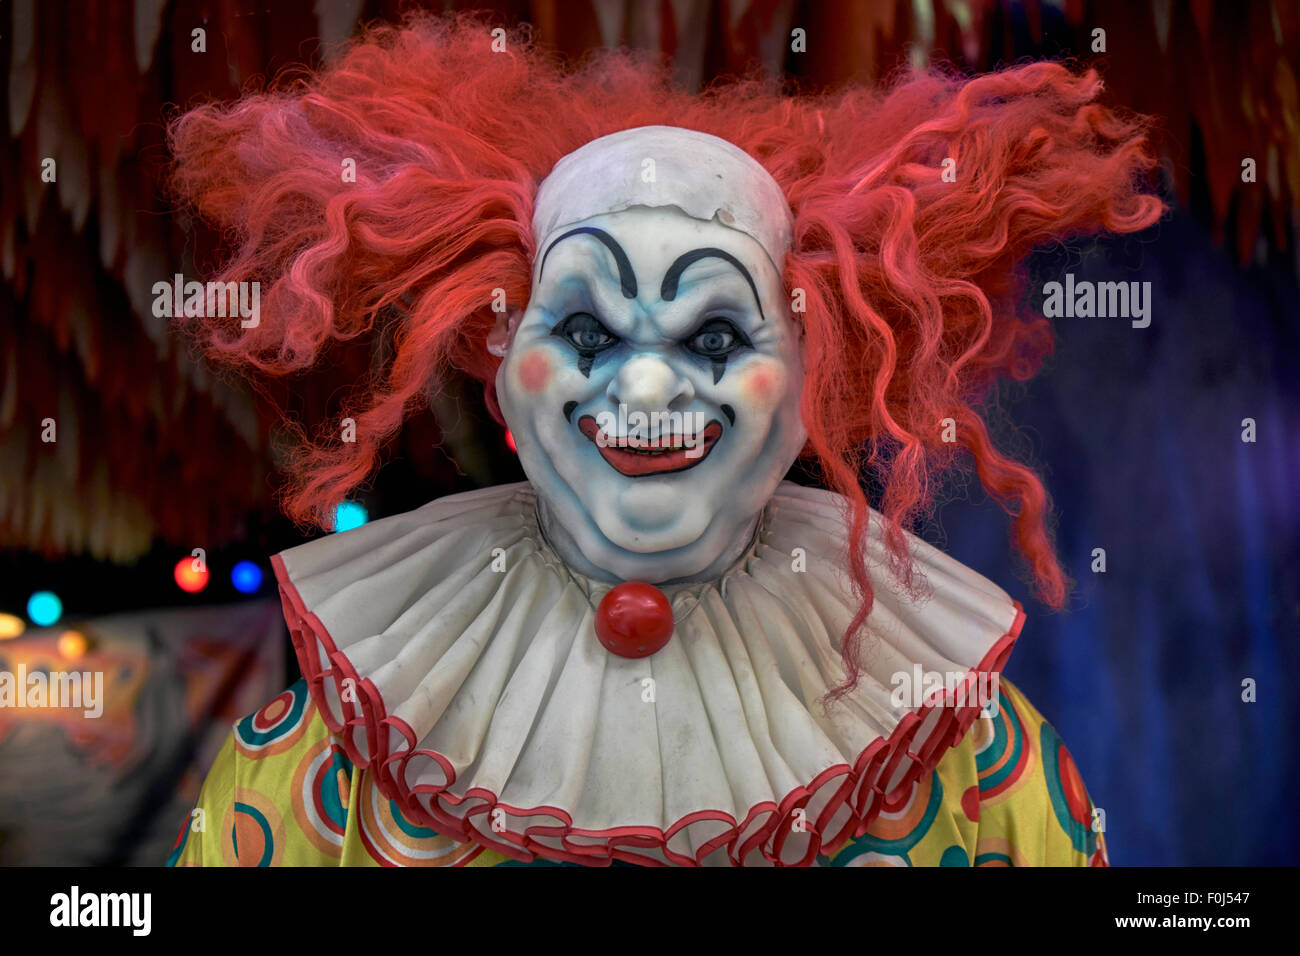 scary clown face figure at a horror show venue ripley u0027s believe